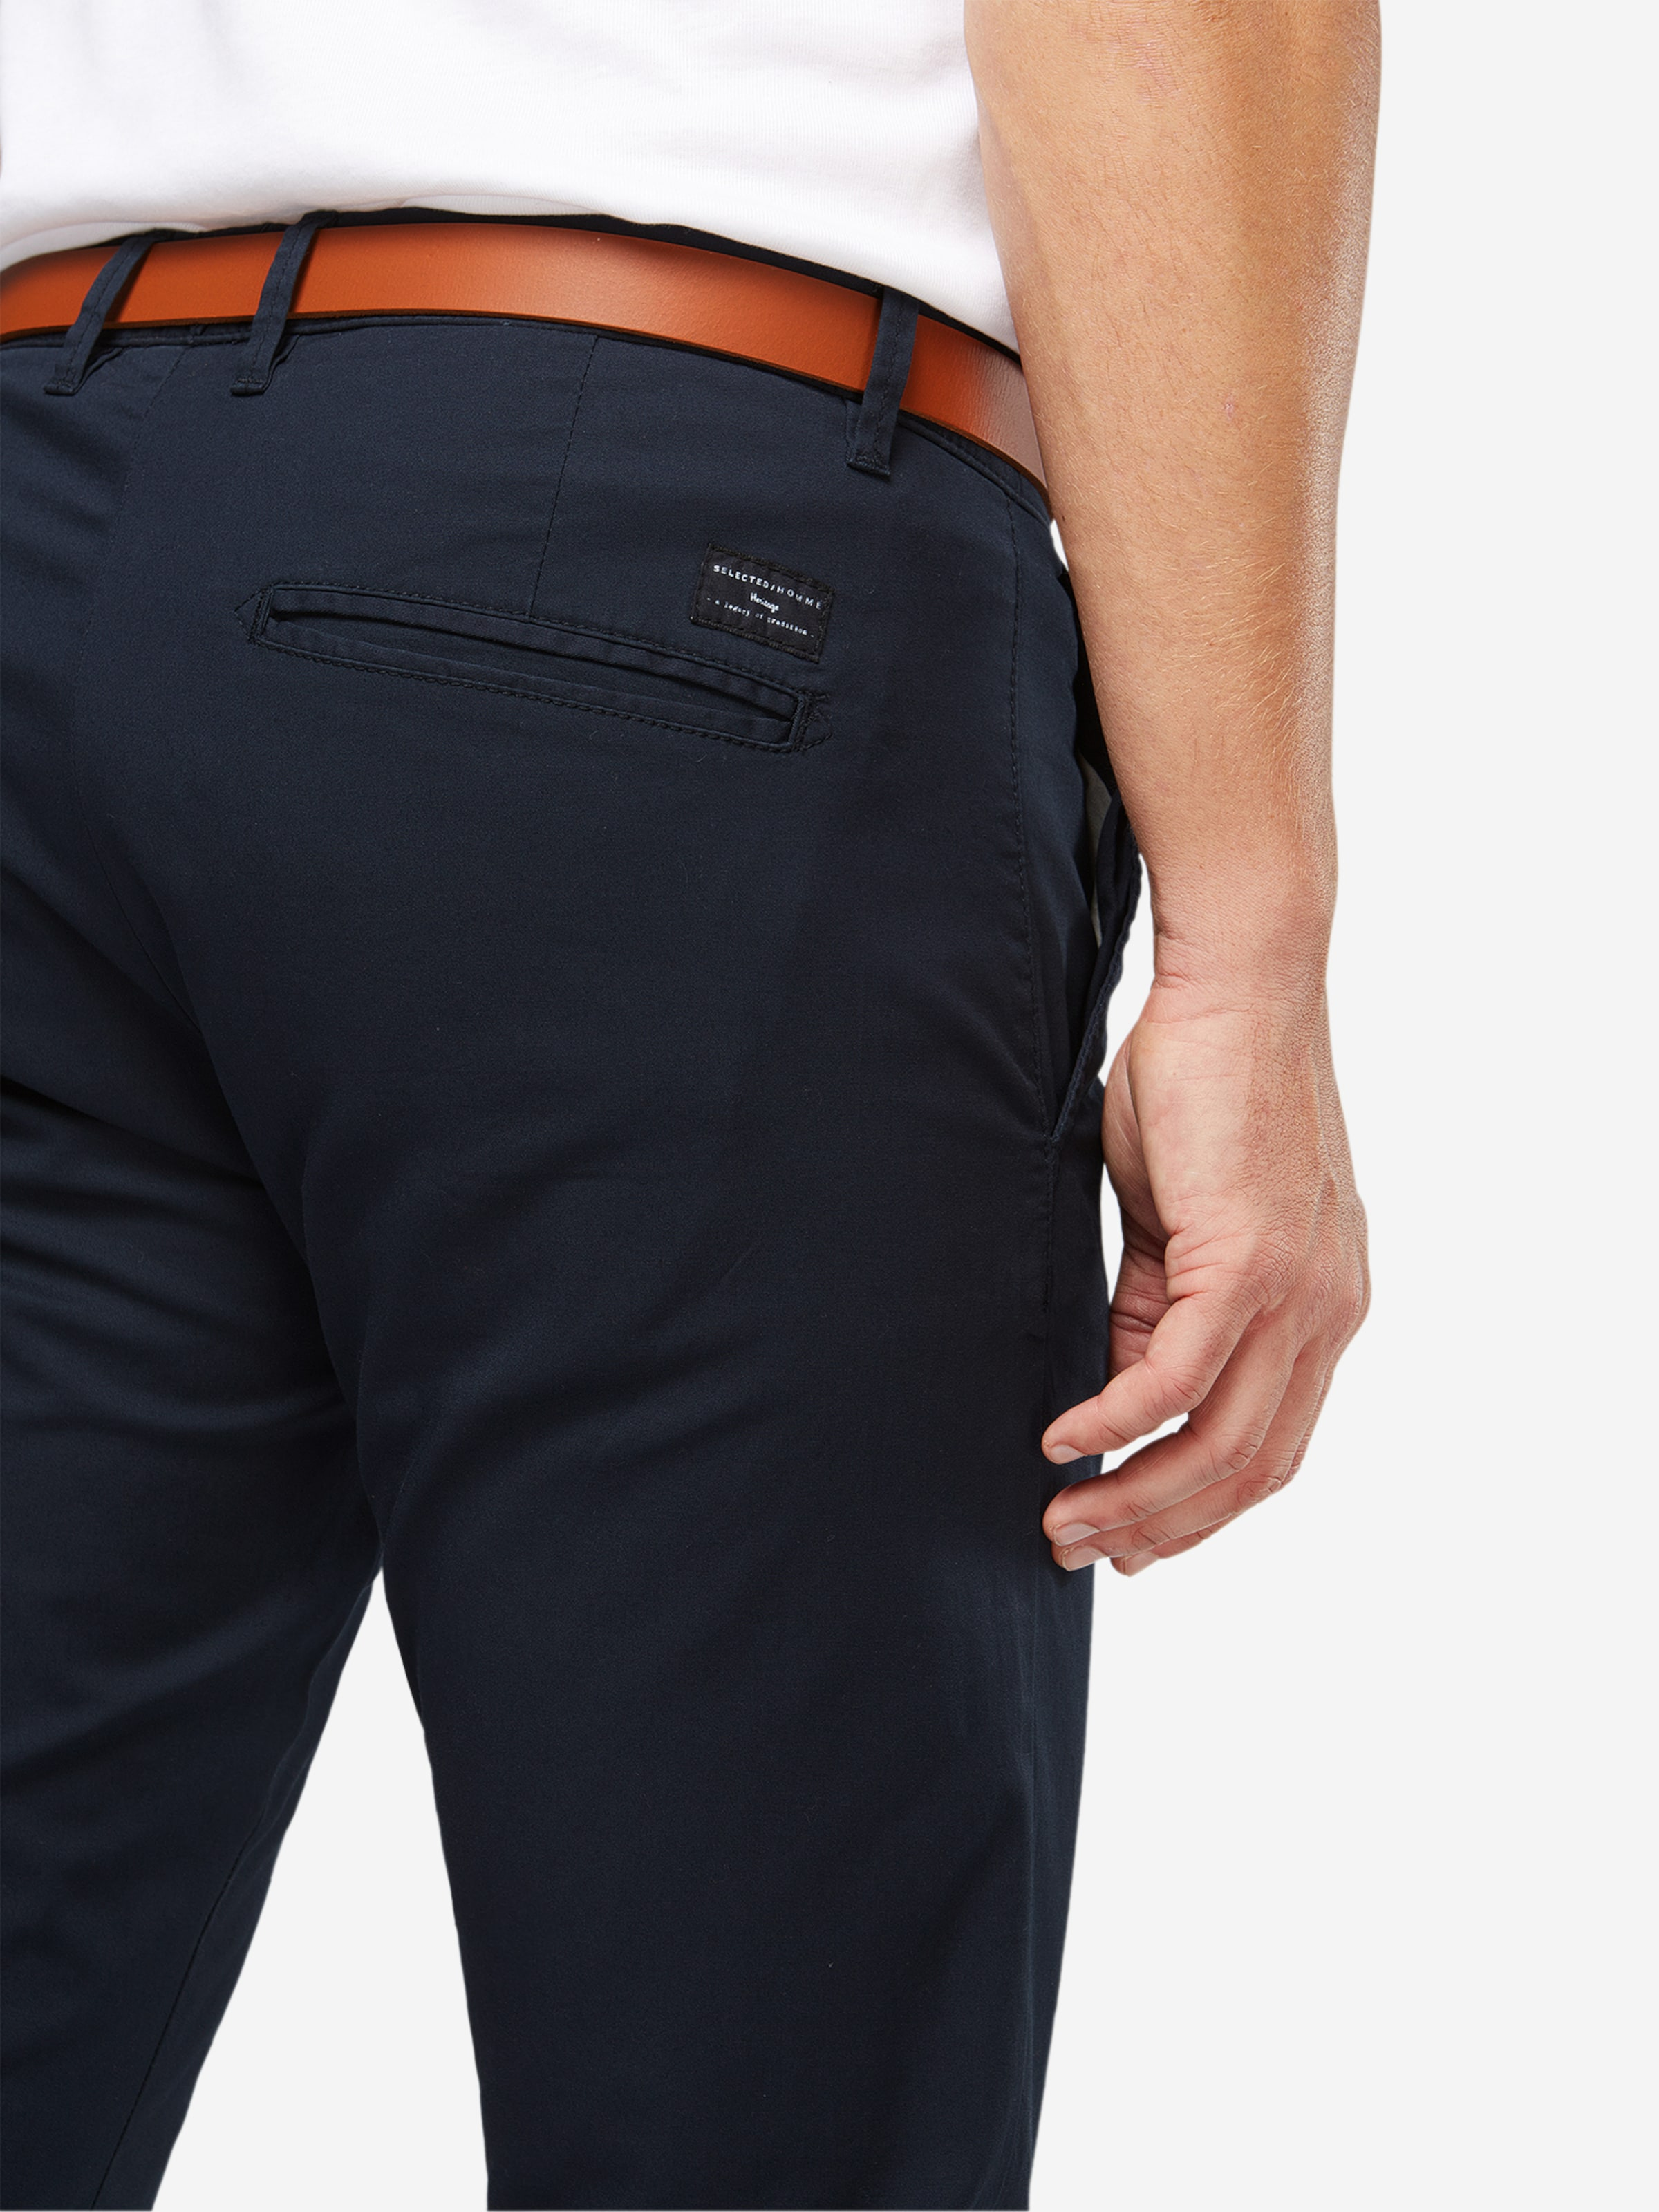 SELECTED HOMME HOMME Chino SELECTED Chino 'SHHYARD' SELECTED 'SHHYARD' 'SHHYARD' Chino SELECTED HOMME r0qSrzw